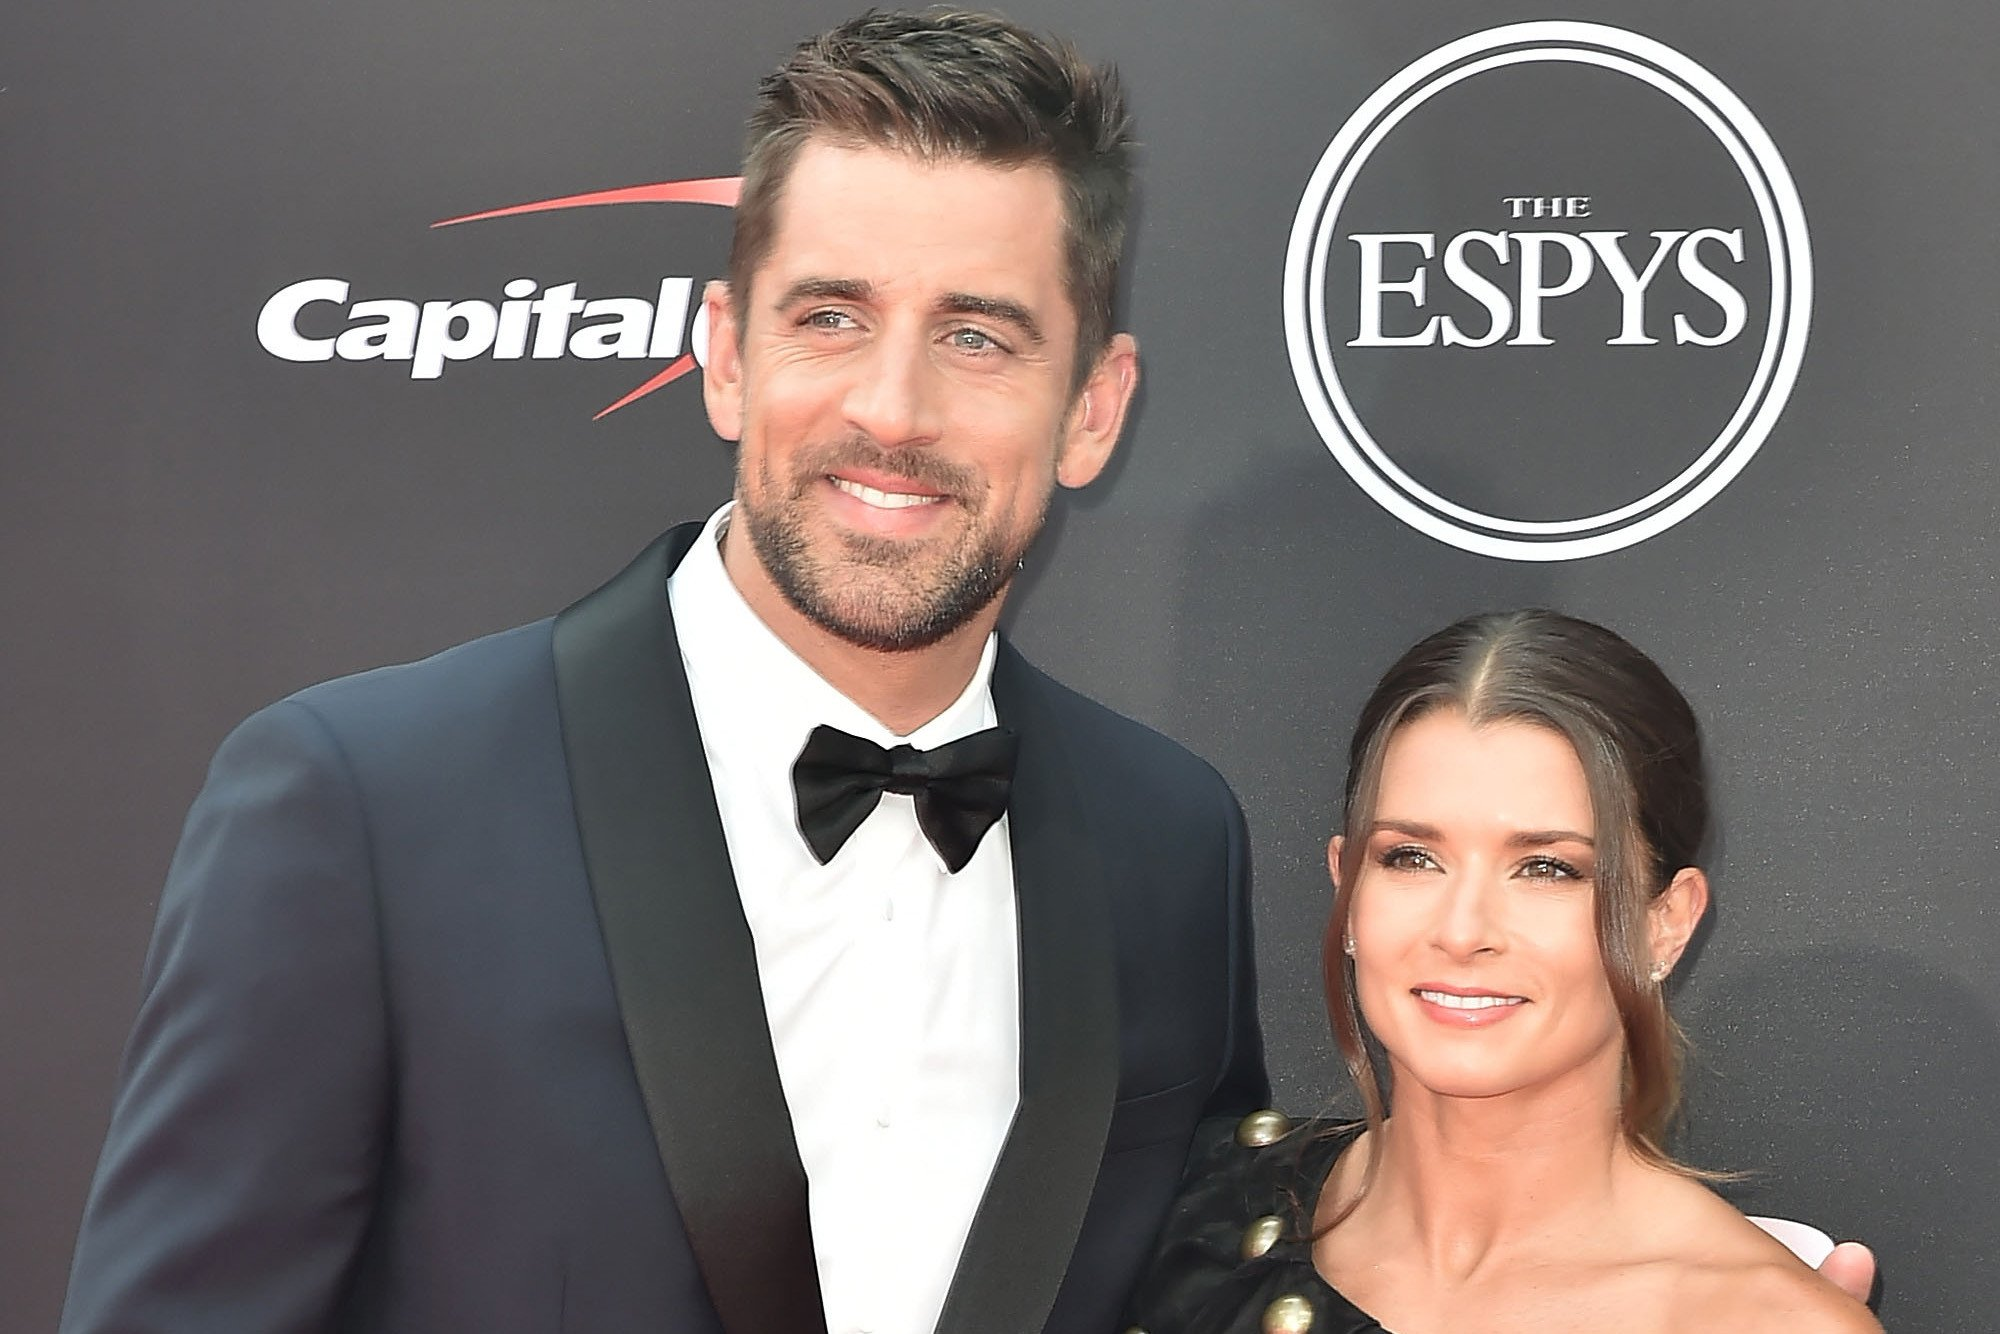 Aaron Rodgers Danica Patrick Feature Used Dumb And Dumber To Date